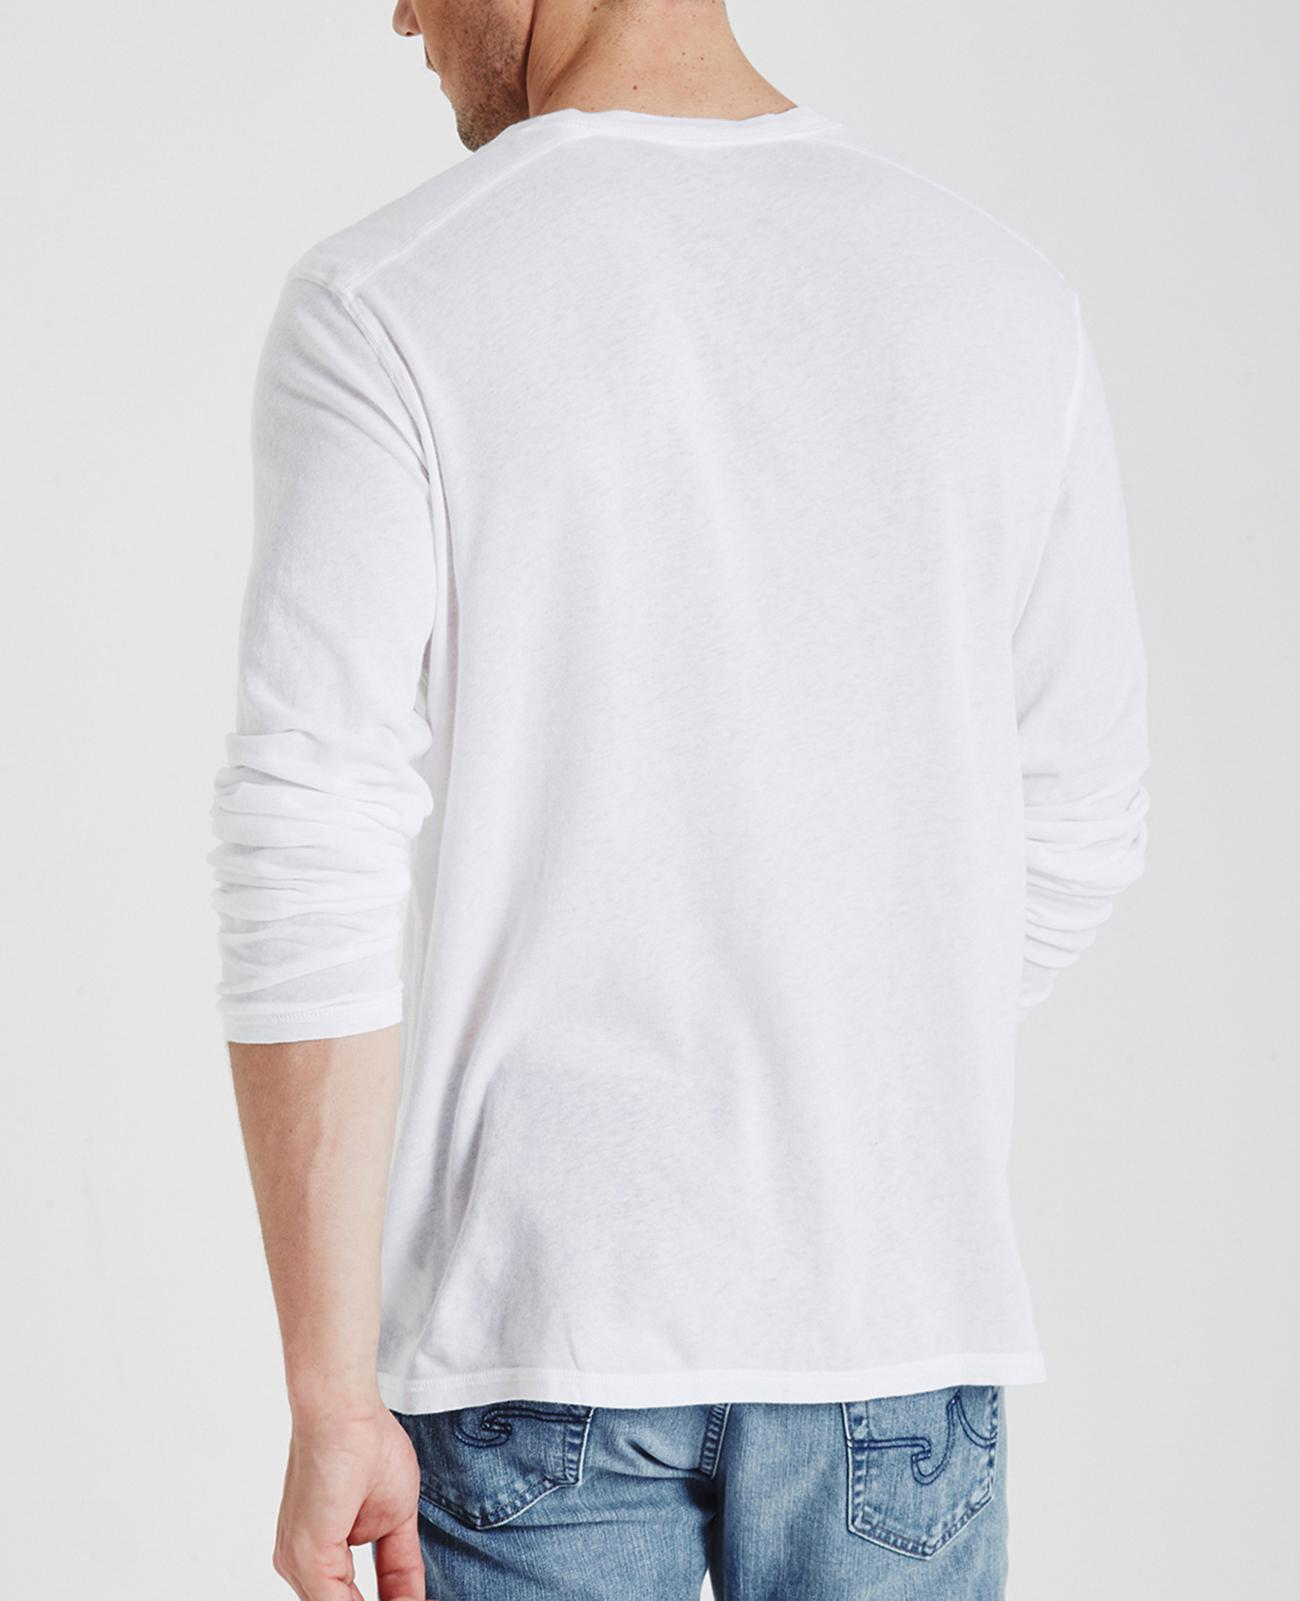 The Remi Henley